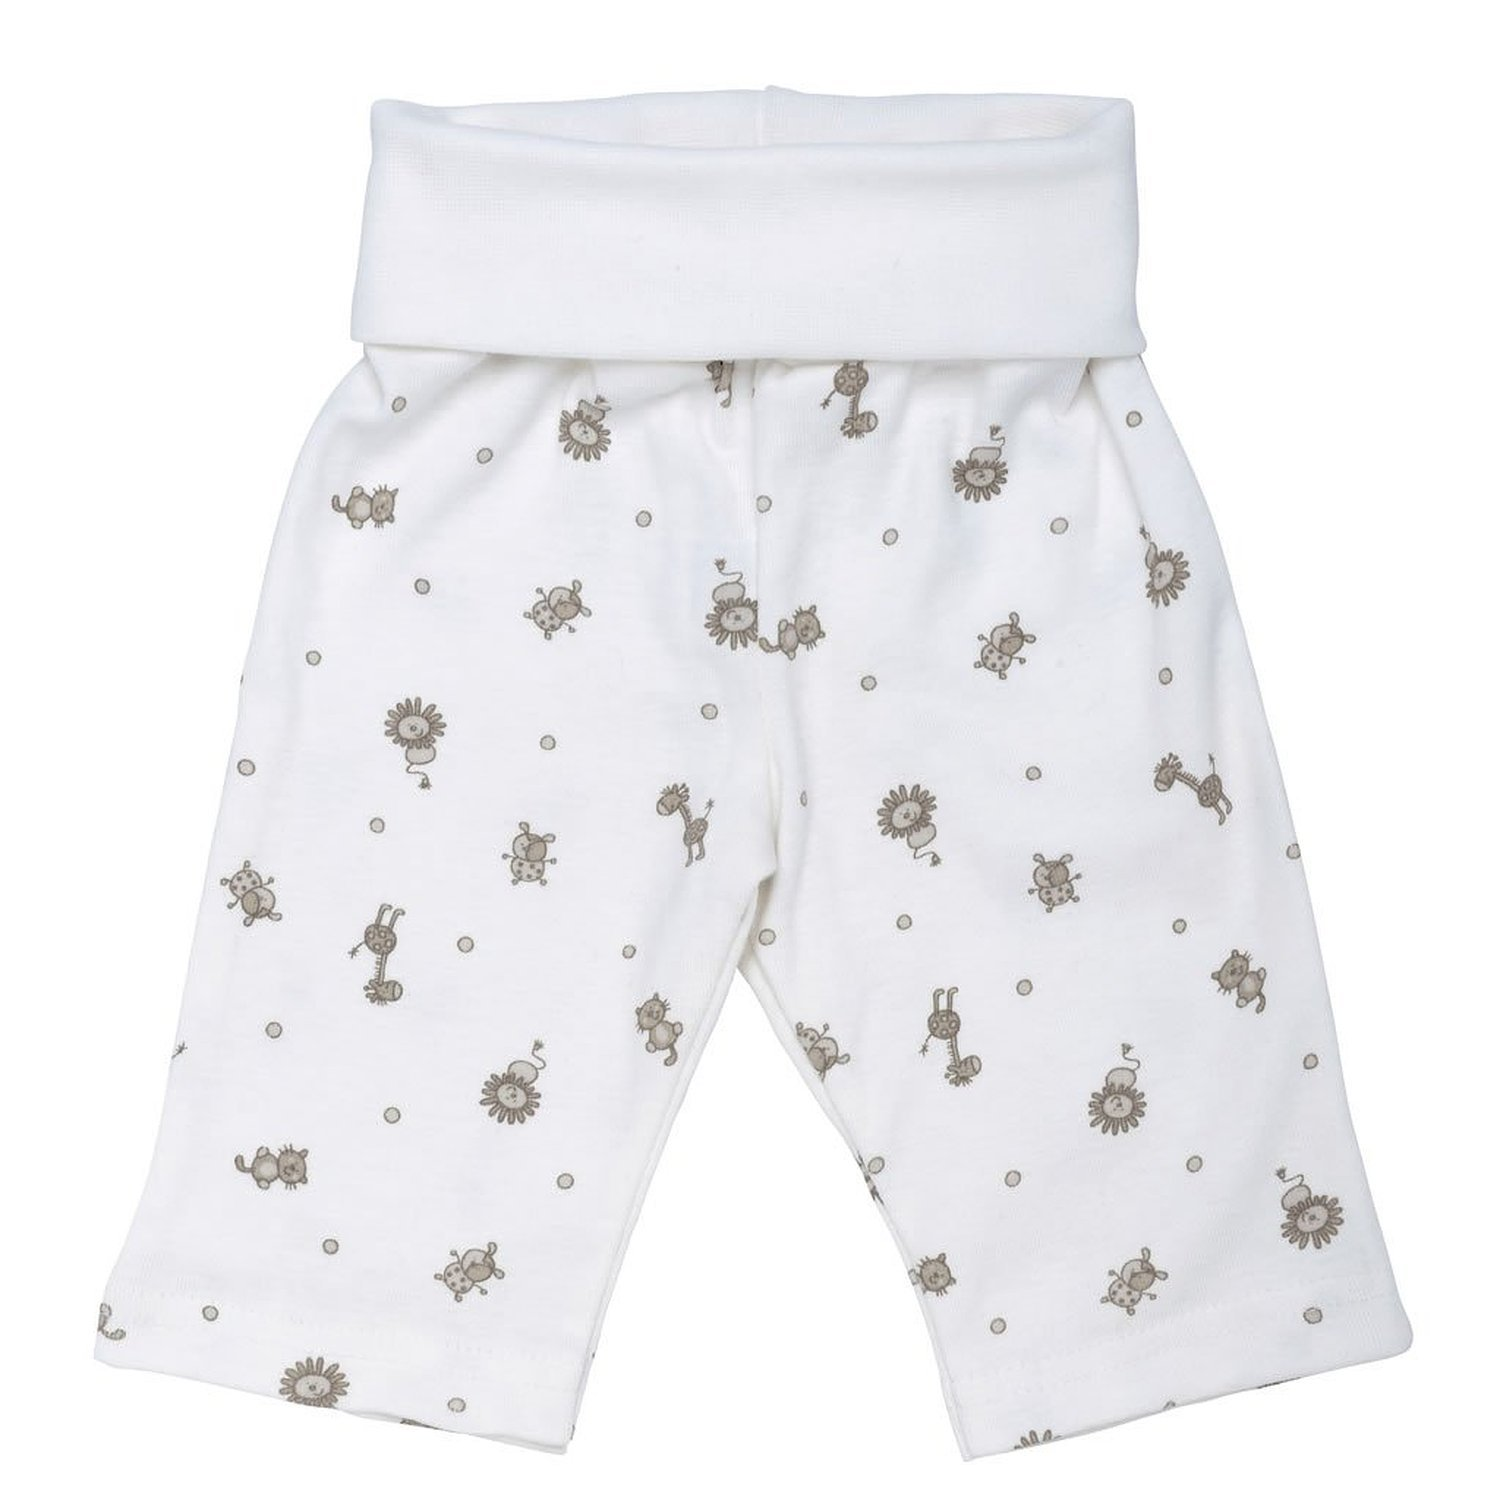 Nature's Nursery Rolled Waist Challenge the lowest price of Japan 3-6M Pants In stock - Print